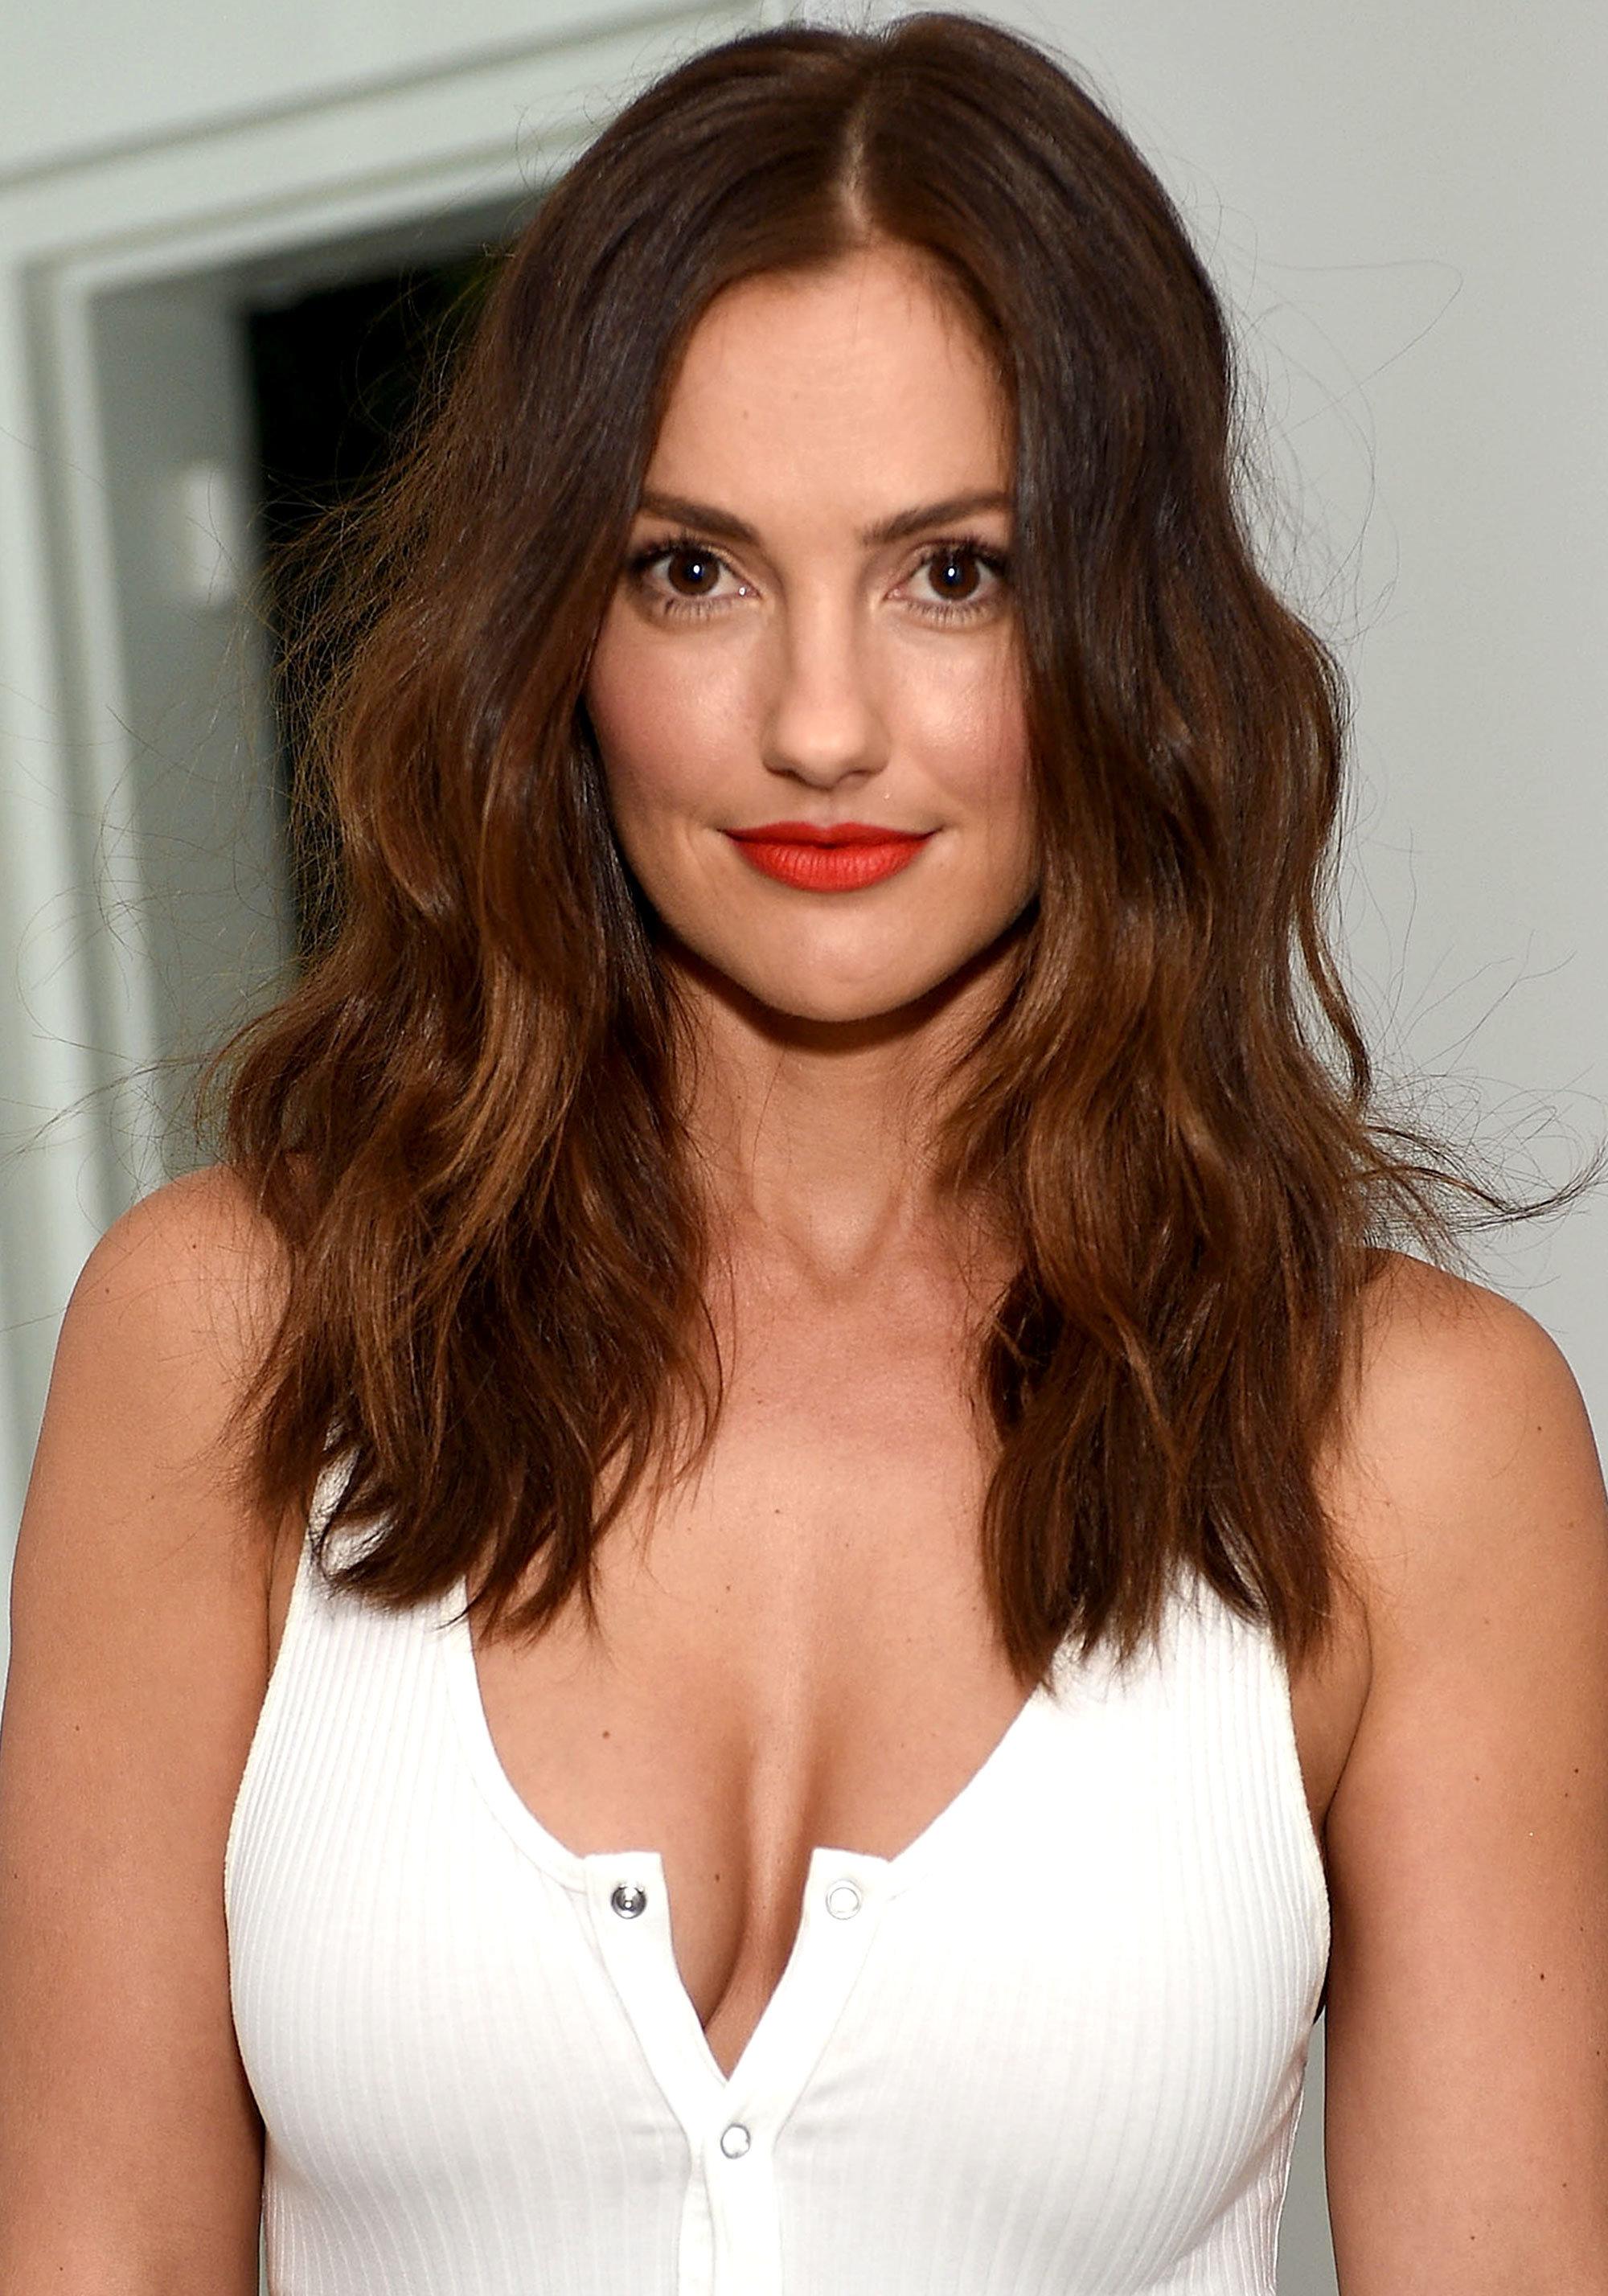 39 Hot Pictures Of Minka Kelly - Titans TV Series - Dawn ...